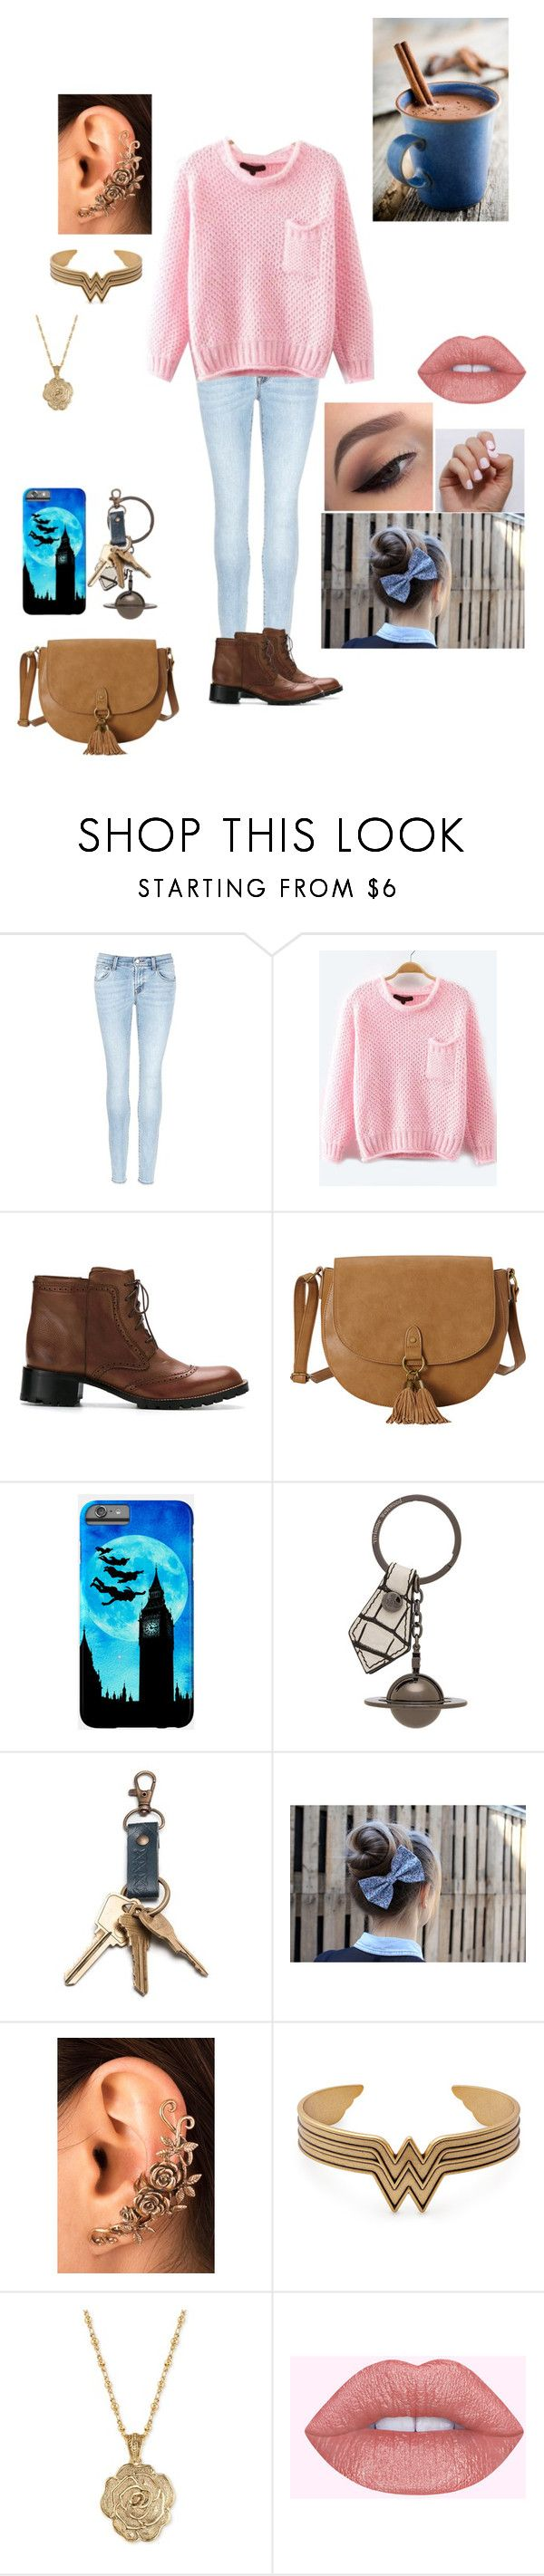 """First date"" by elisa-moralespv ❤ liked on Polyvore featuring J Brand, Sarah Chofakian, T-shirt & Jeans, Vivienne Westwood, 2028 and SoGloss"